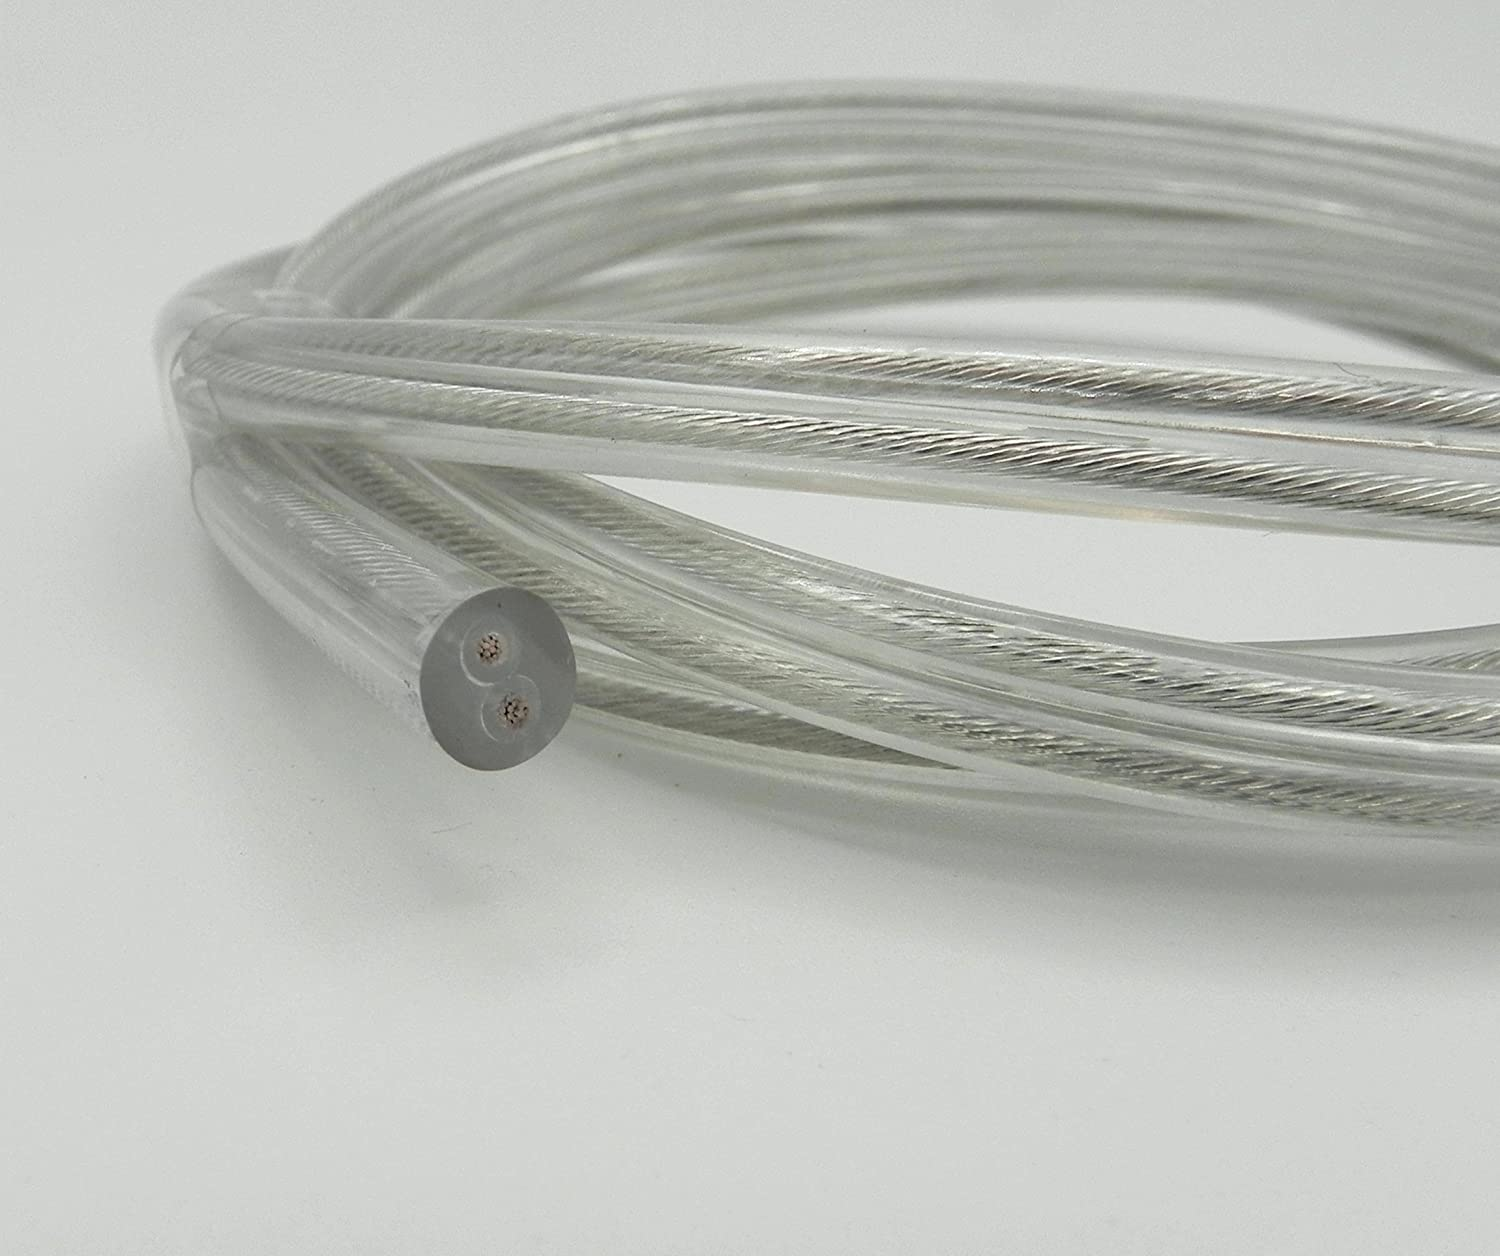 Stromkabel 2x 0,75 mm² - transparent - Kabel - Leitung: Amazon.de ...